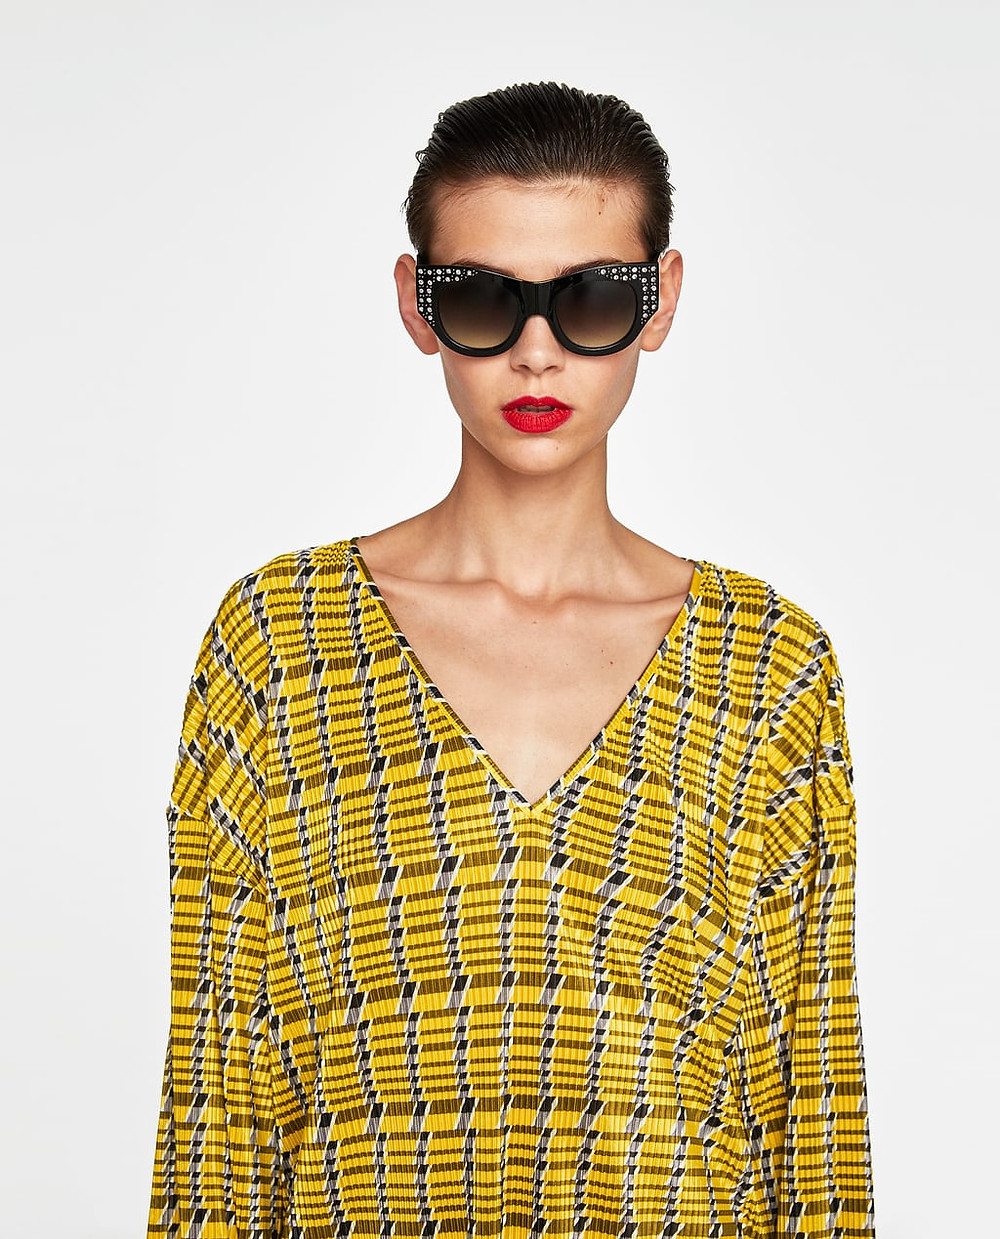 Zara Plastic Frame Sunglasses with Encrusted Detailing $29.90